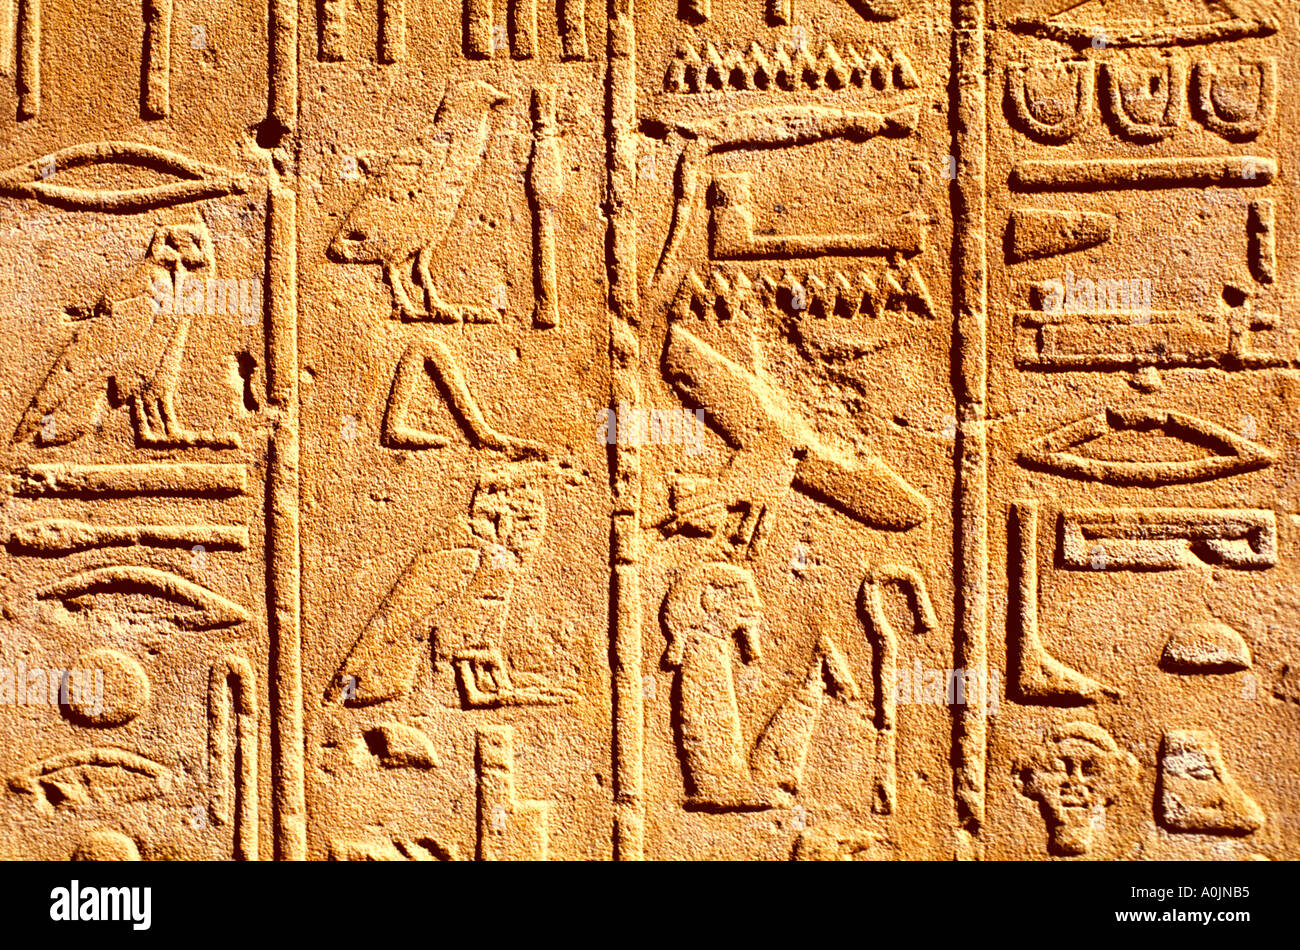 EGYPT LUXOR KARNAK TEMPLE RELIEF WITH HIEROGLYPHS  - Stock Image